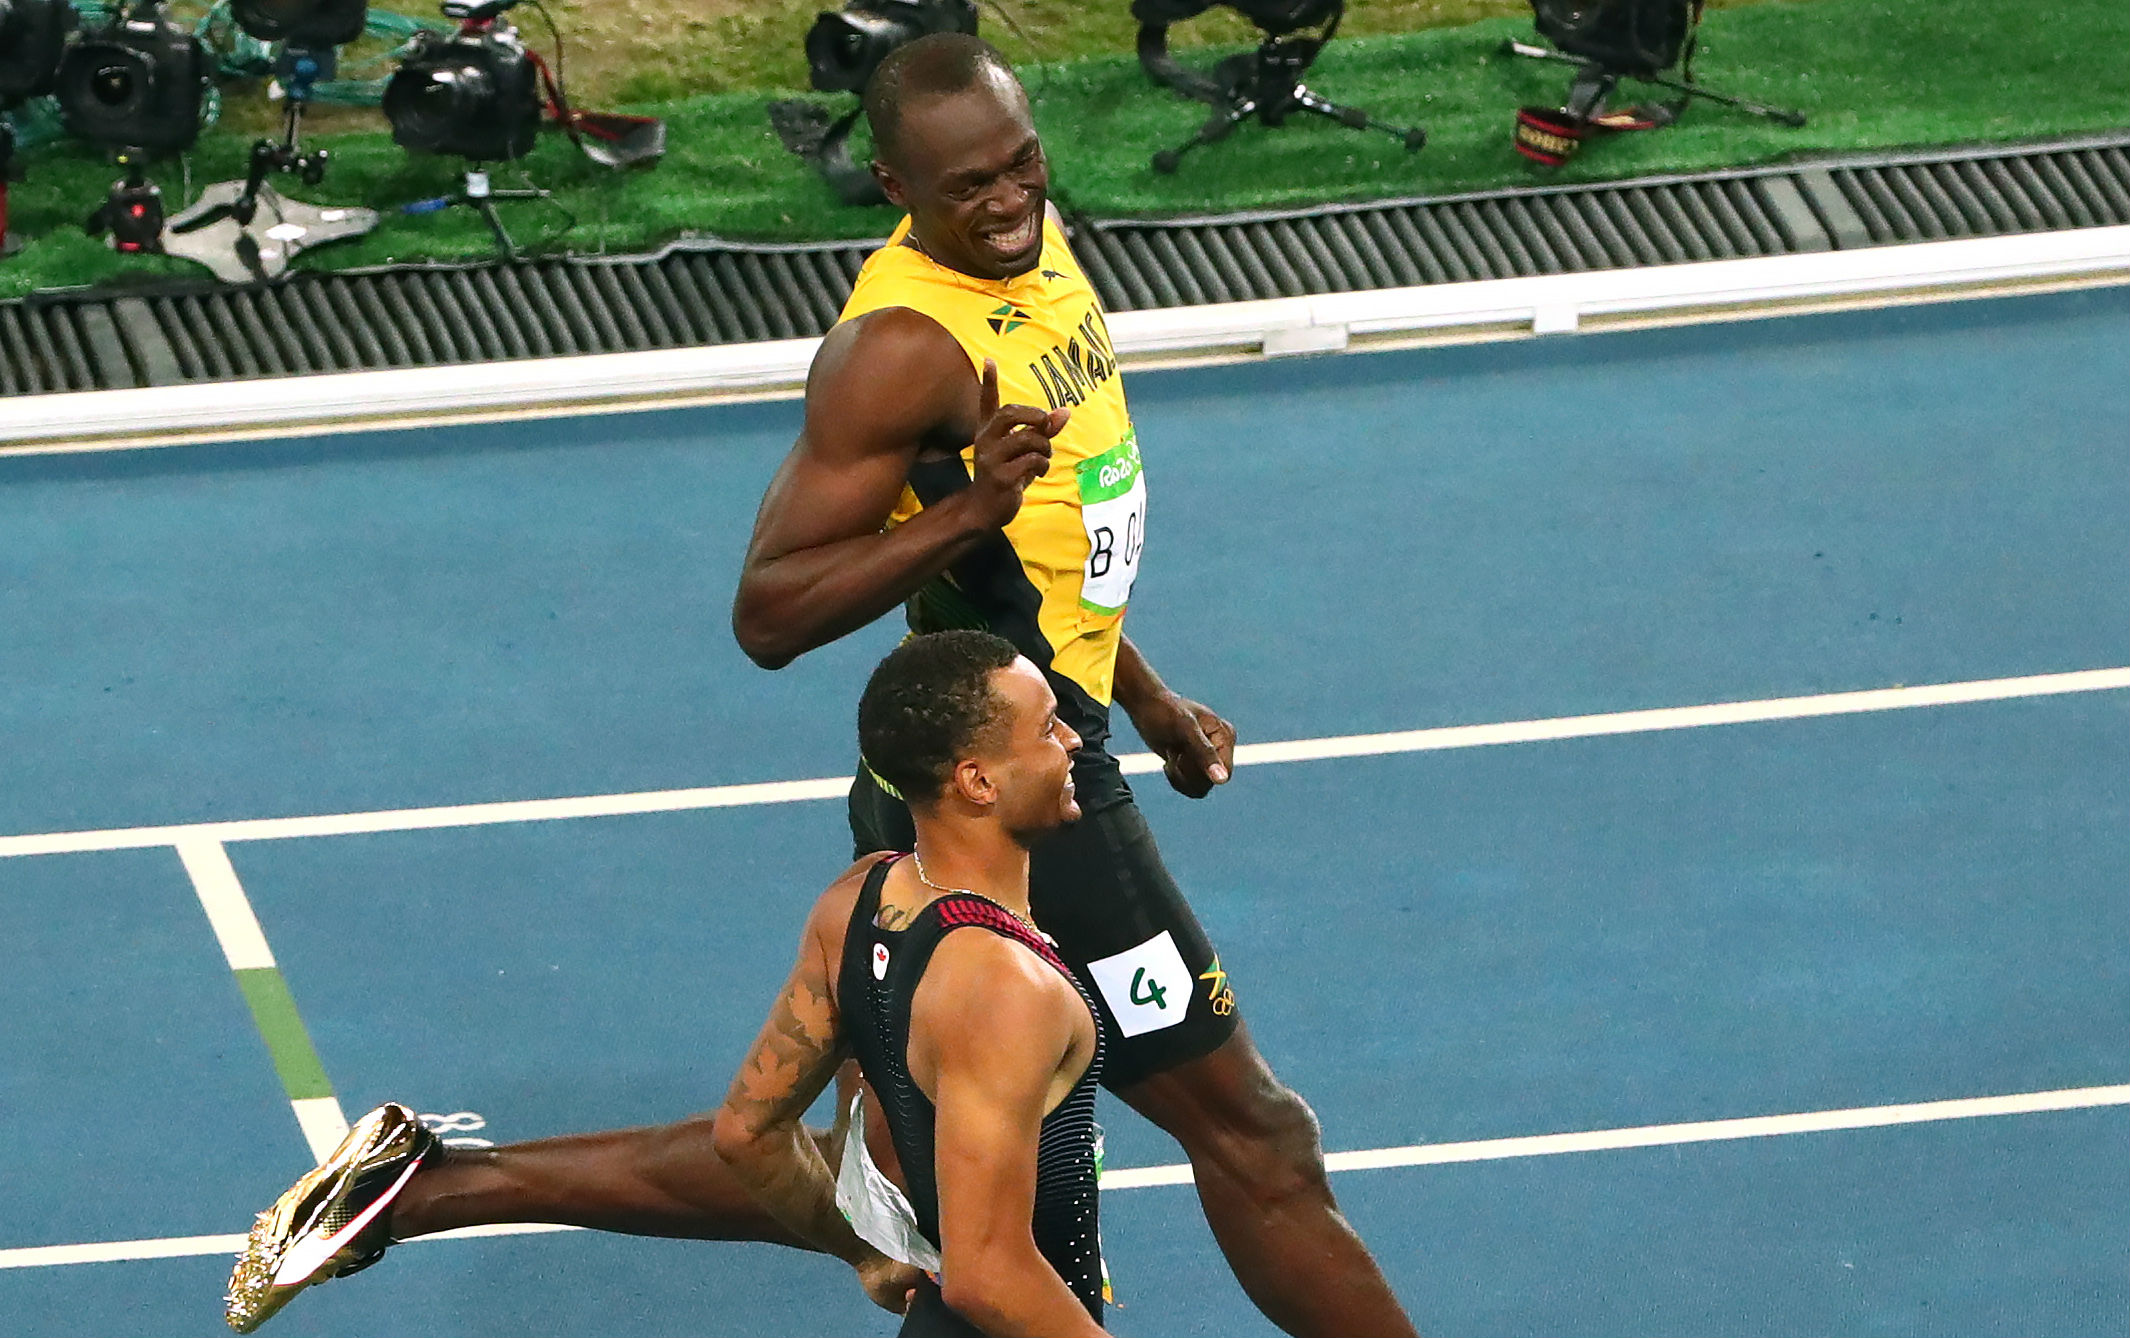 ee4f74bb73e6a6 Usain Bolt s Gold Puma Spikes for the Olympics Laugh